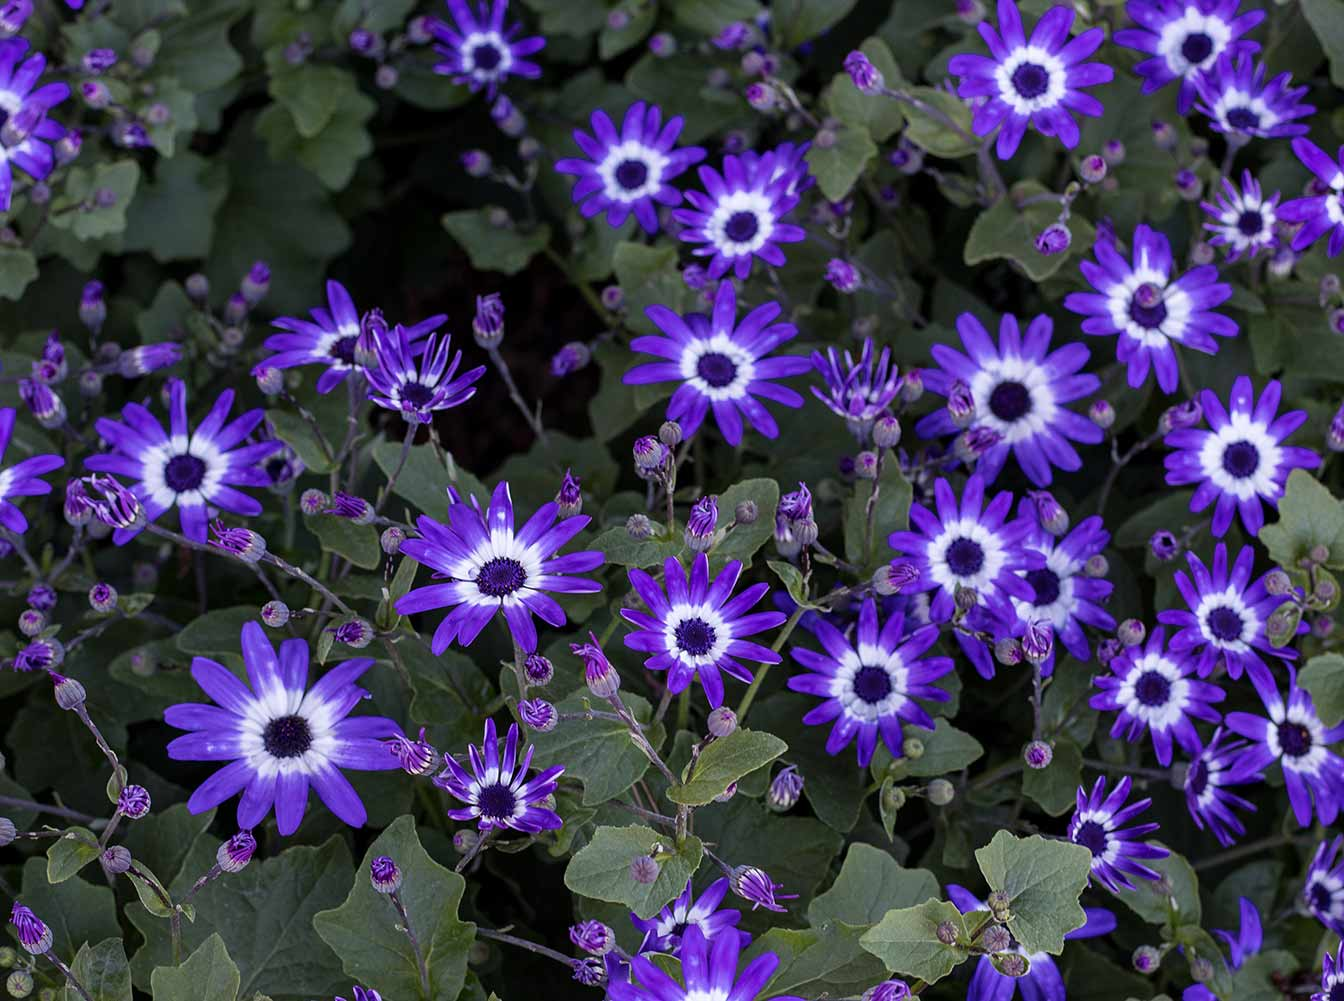 An image of purple daisies